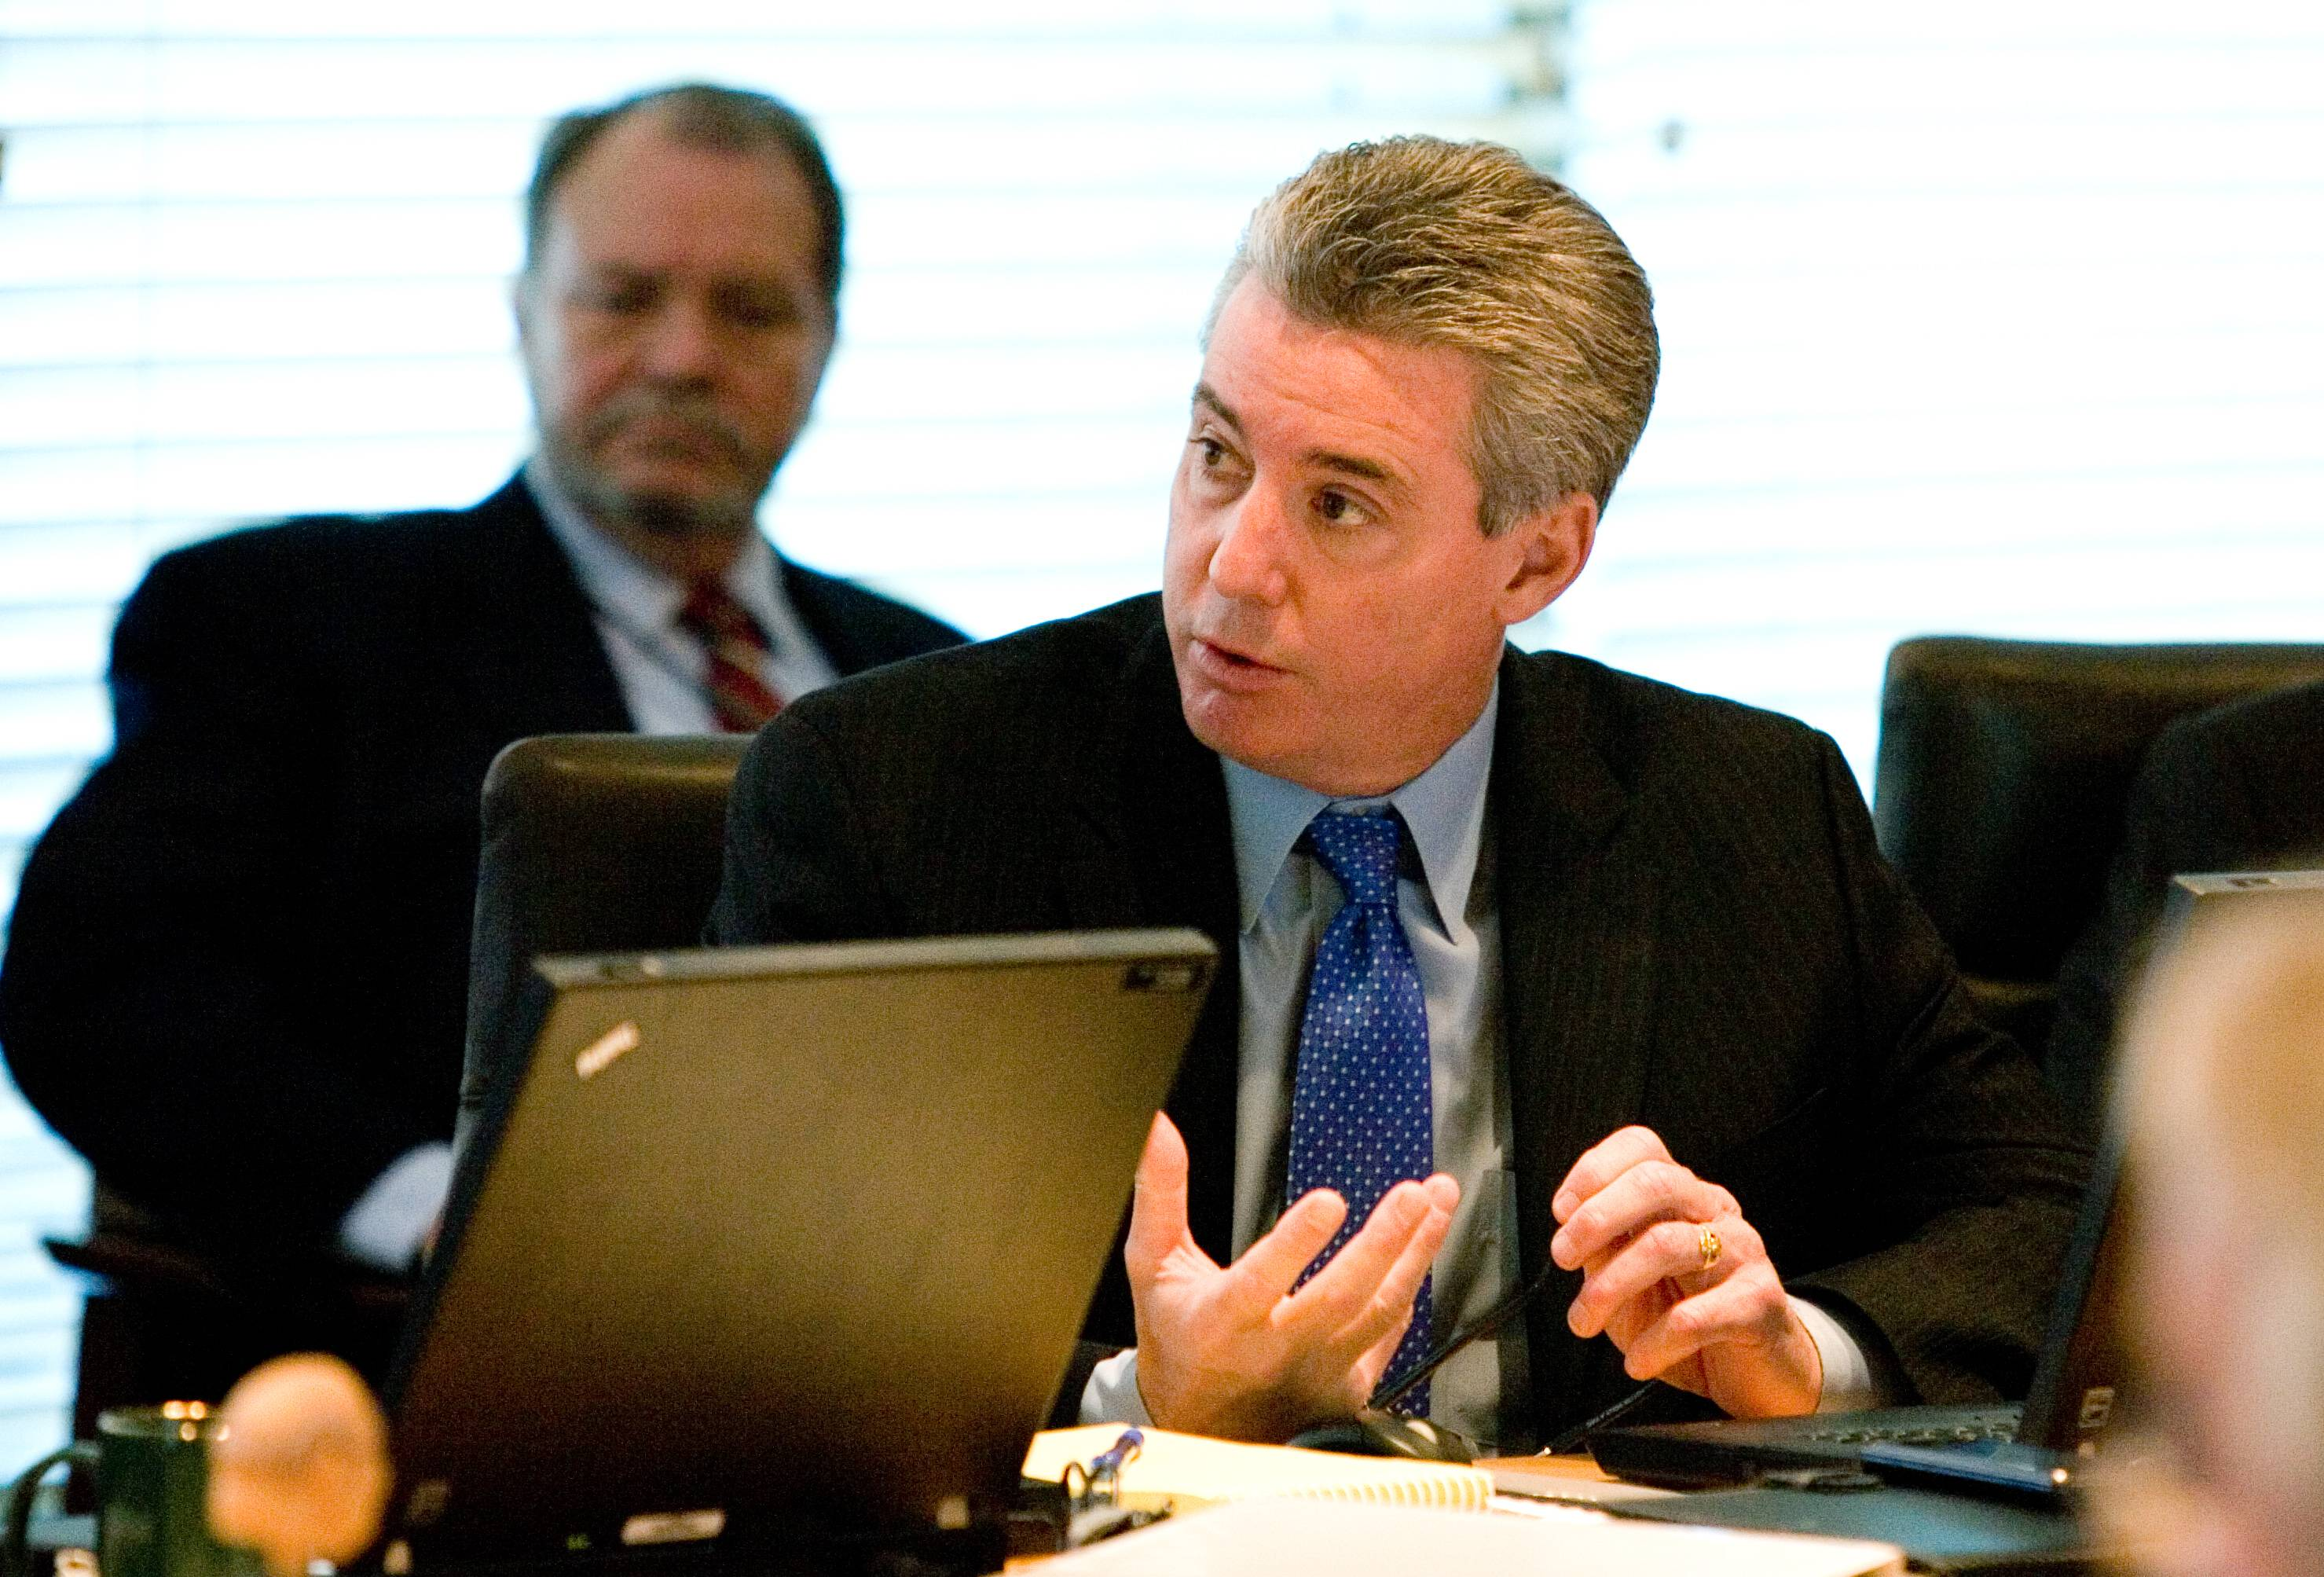 Labor leader James Sweeney out at tollway board